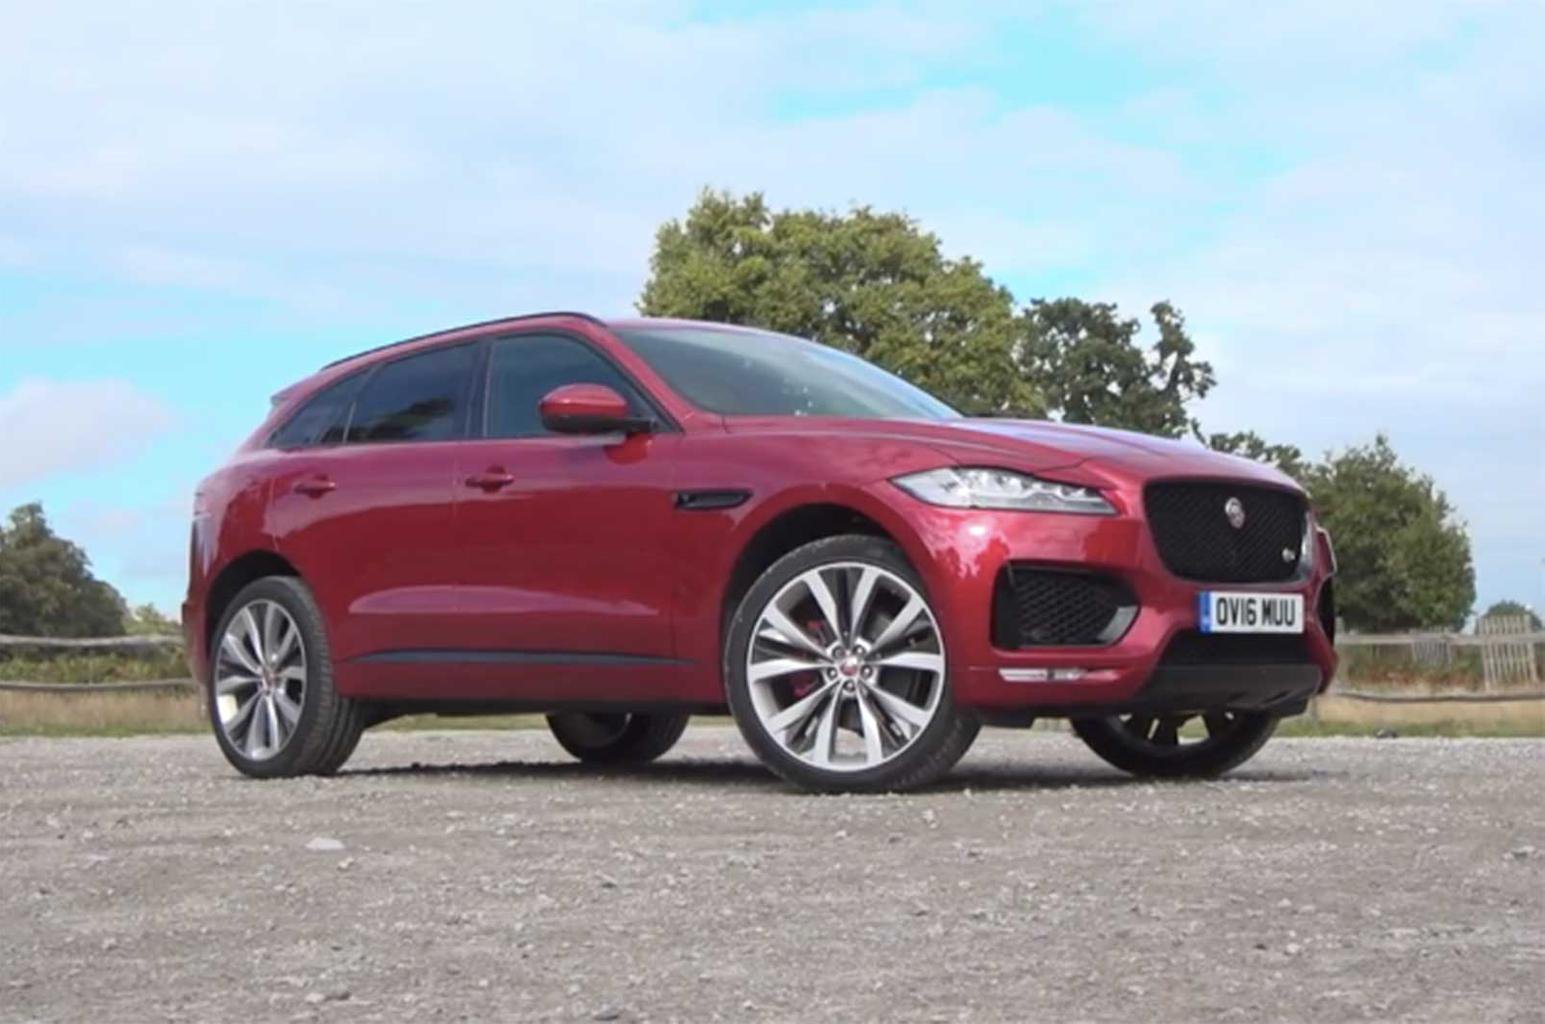 New Jaguar F-Pace reviewed on video